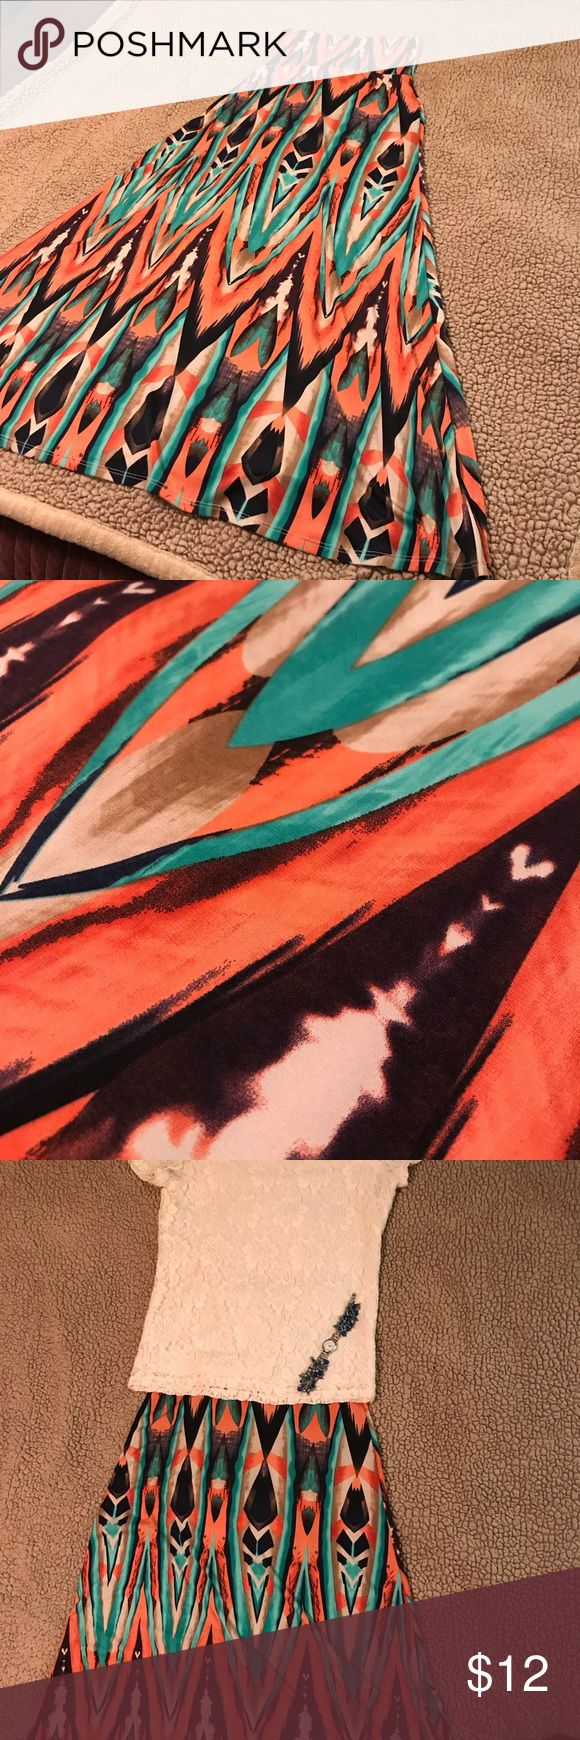 Coral, Cream, & Turquoise maxi skirt Soft, stretchy, comfortable maxi skirt by Diosa. Purchased at a local boutique. EUC. Wore a few times but no signs of wear. Beautiful colors of coral, cream, turquoise, and navy. Excellent for summer wear! Diosa Skirts Maxi